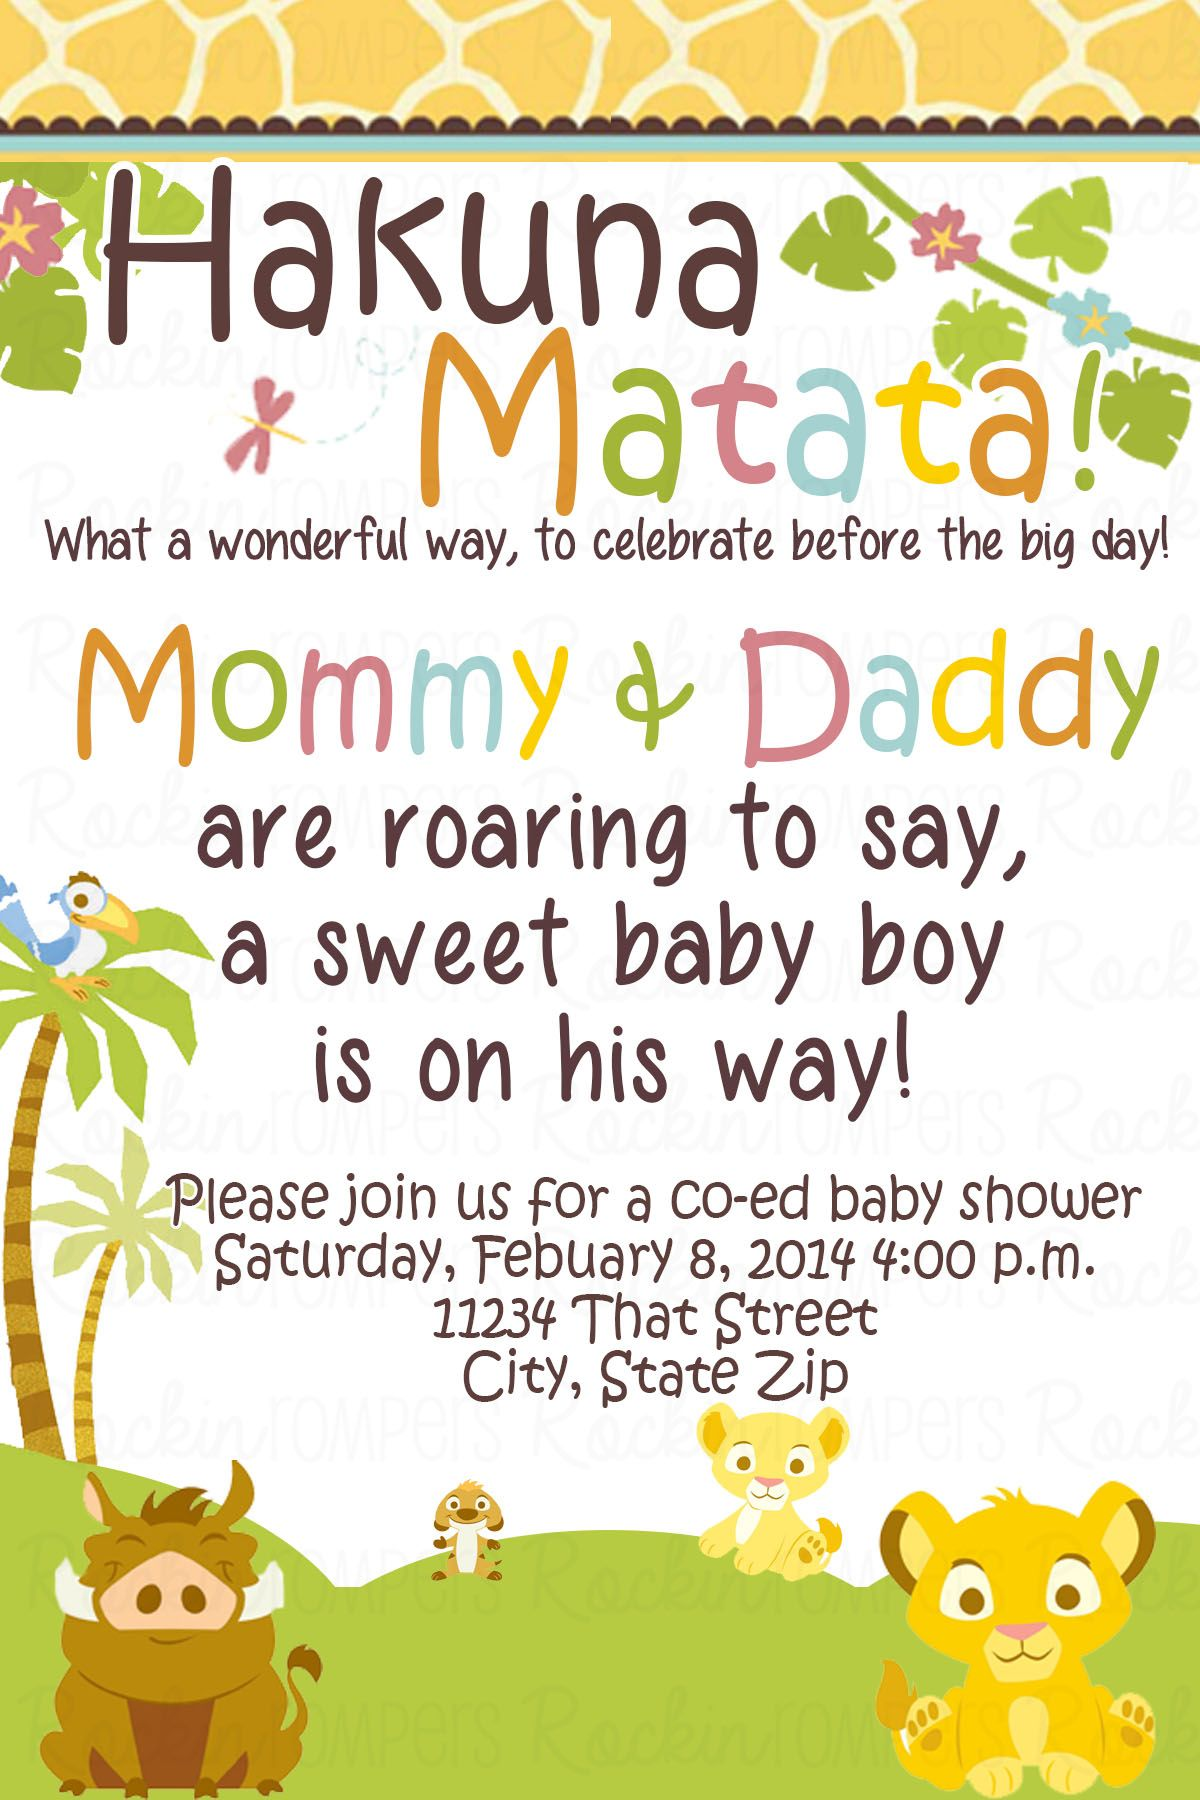 Lion King Baby Shower Invitation www.facebook.com/rockinrompers www ...